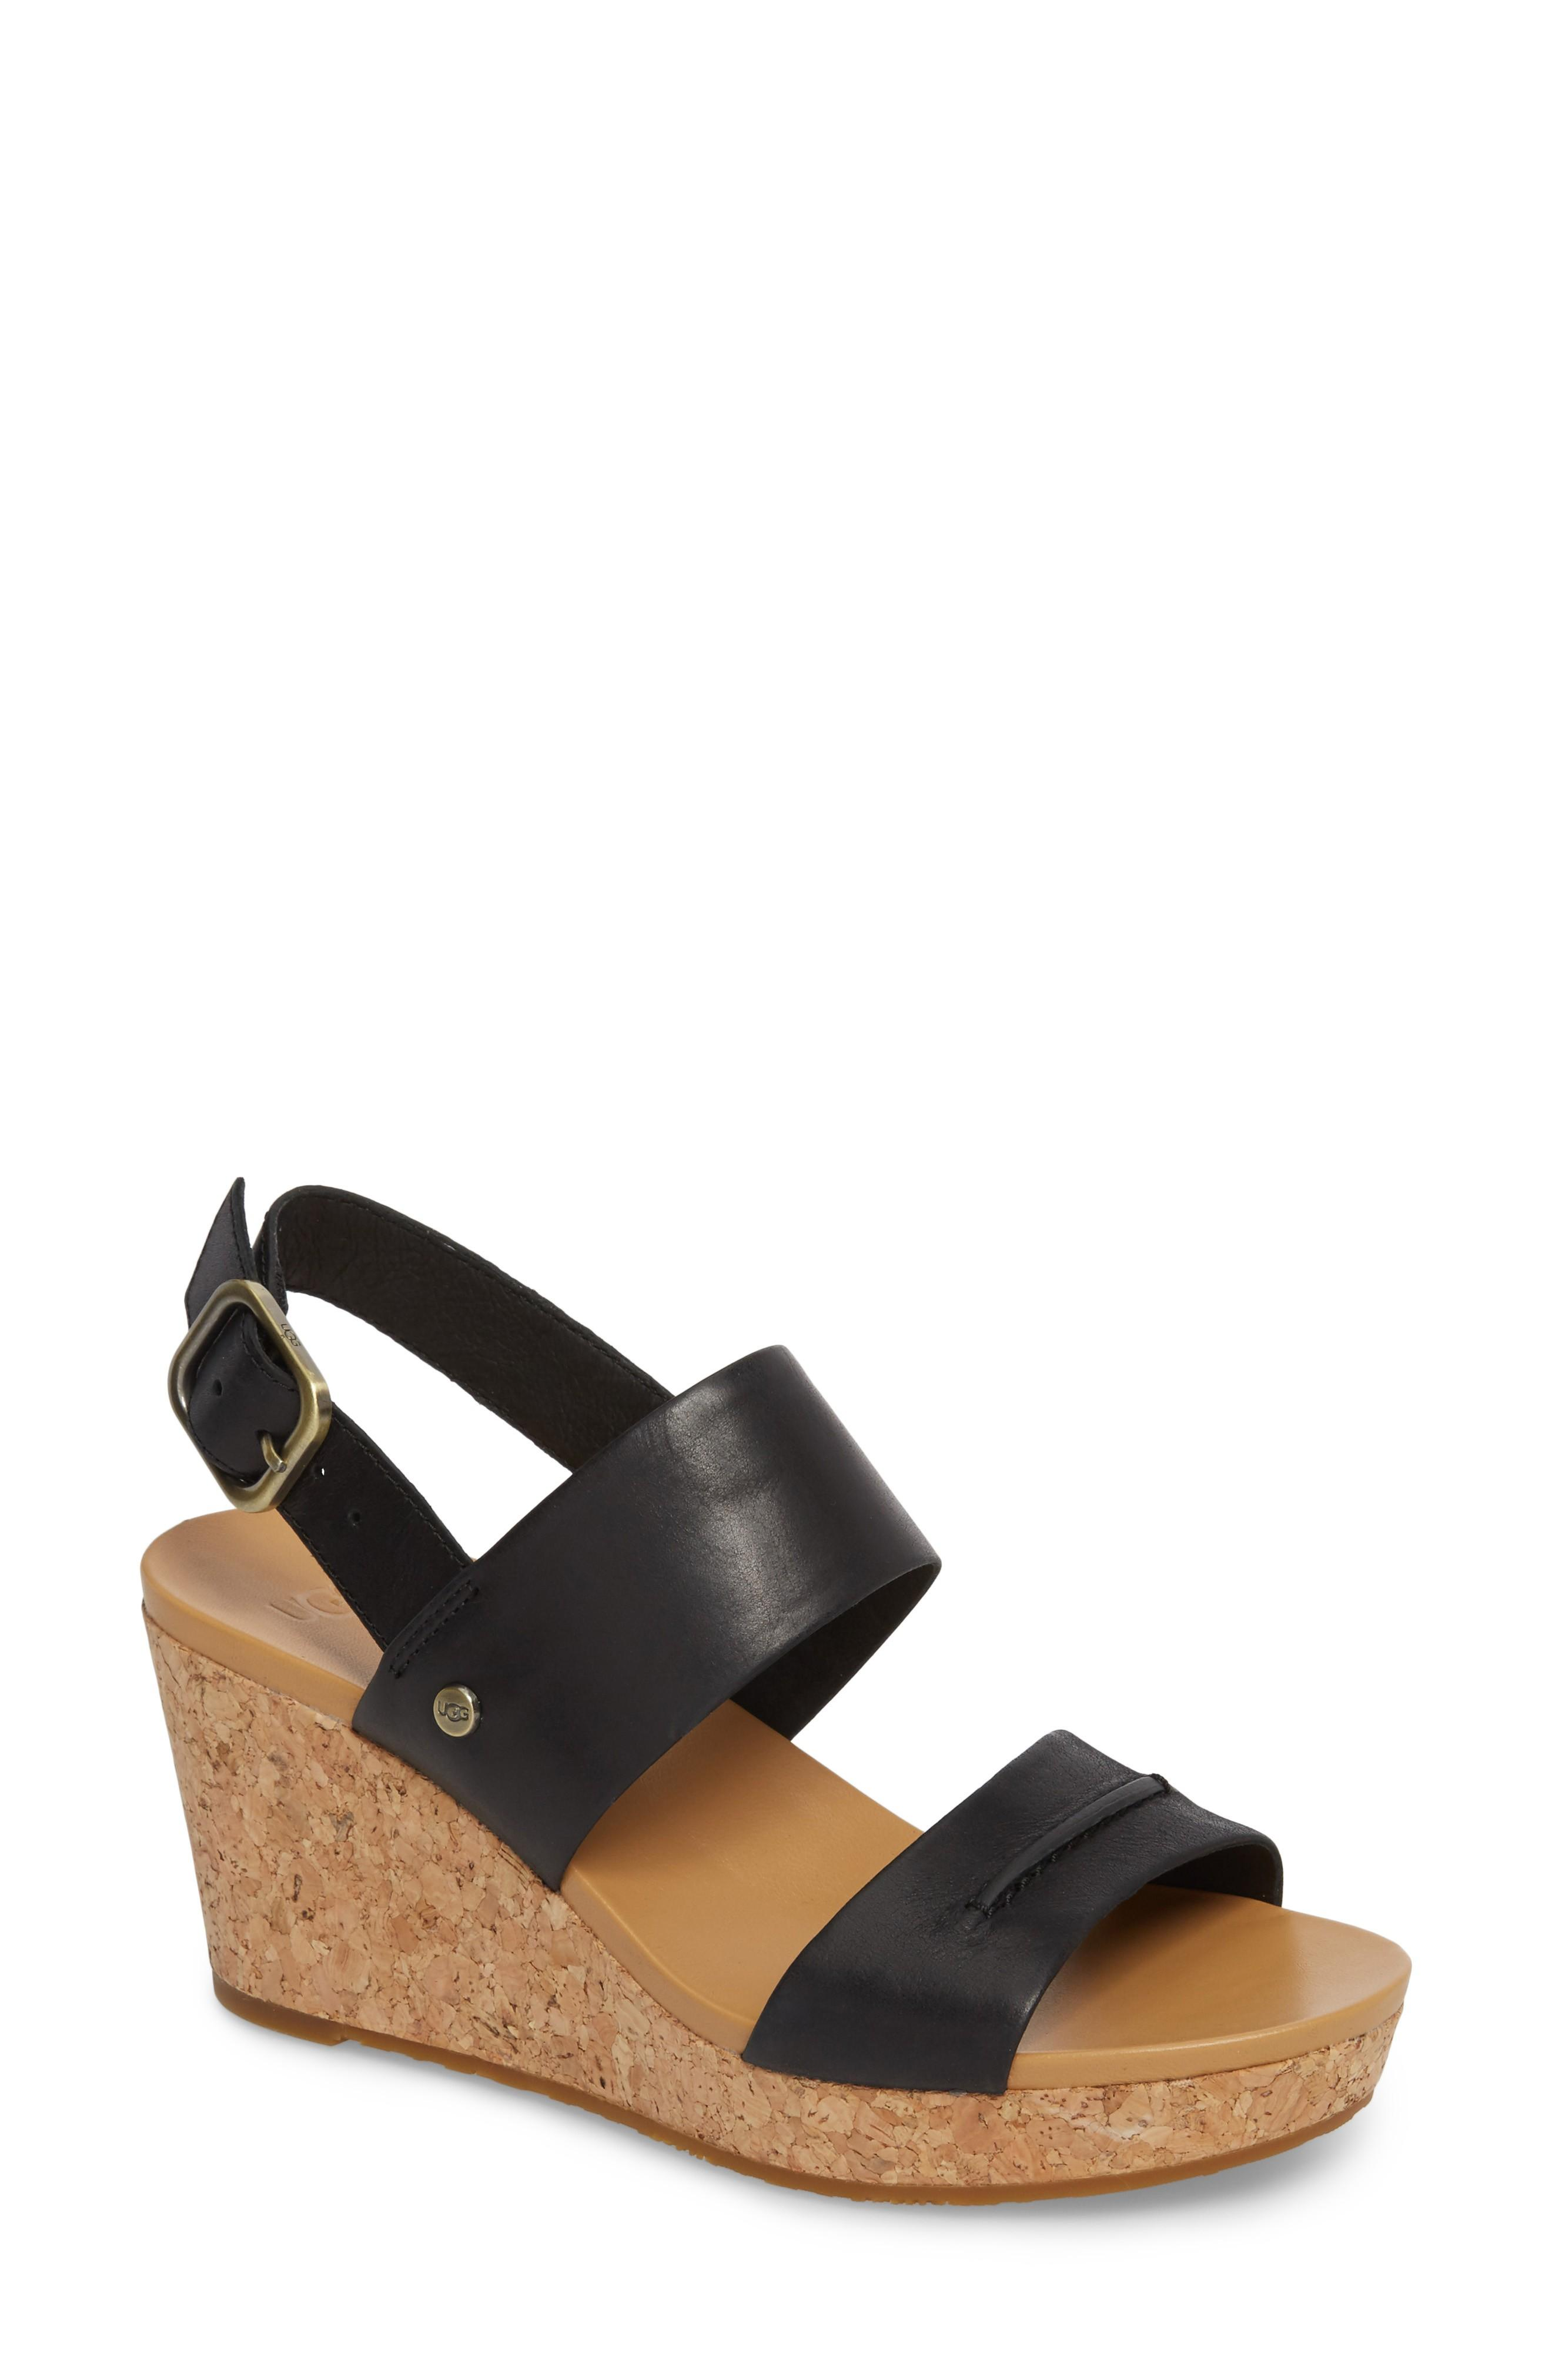 24e0b3e4cd84 A cork-covered platform wedge gives a summery lift to a casual sandal  fitted with a cushy footbed for all-day comfort. Style Name  Ugg Elena Ii  Platform ...